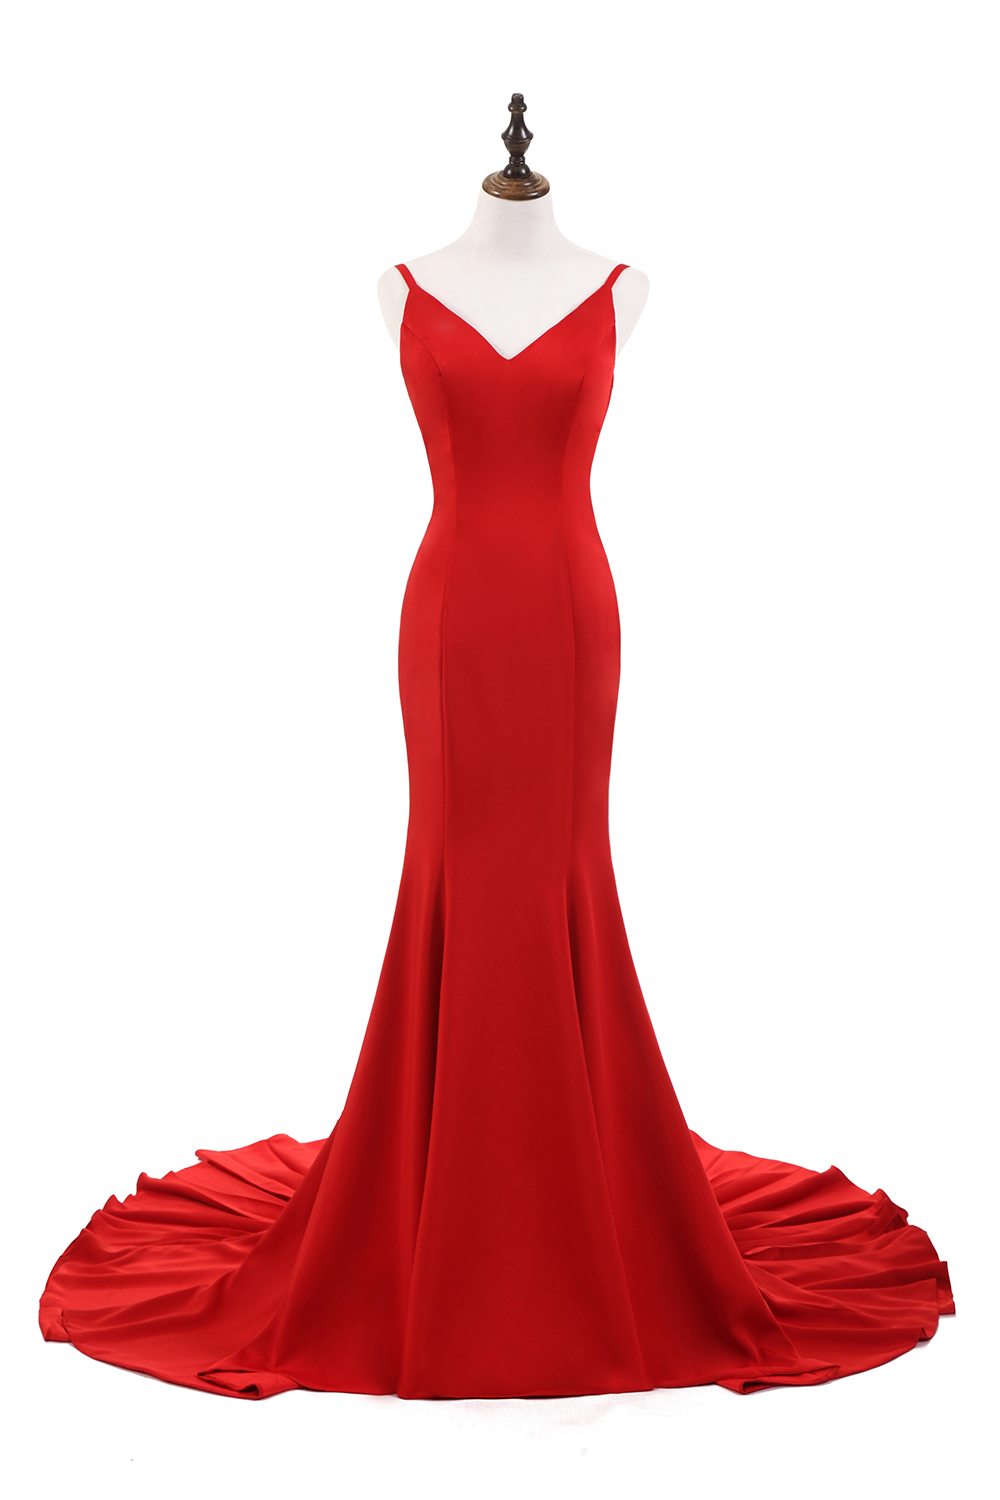 BeryLove Sexy Red Mermaid Evening Dresses Styles V Neck Backless ...